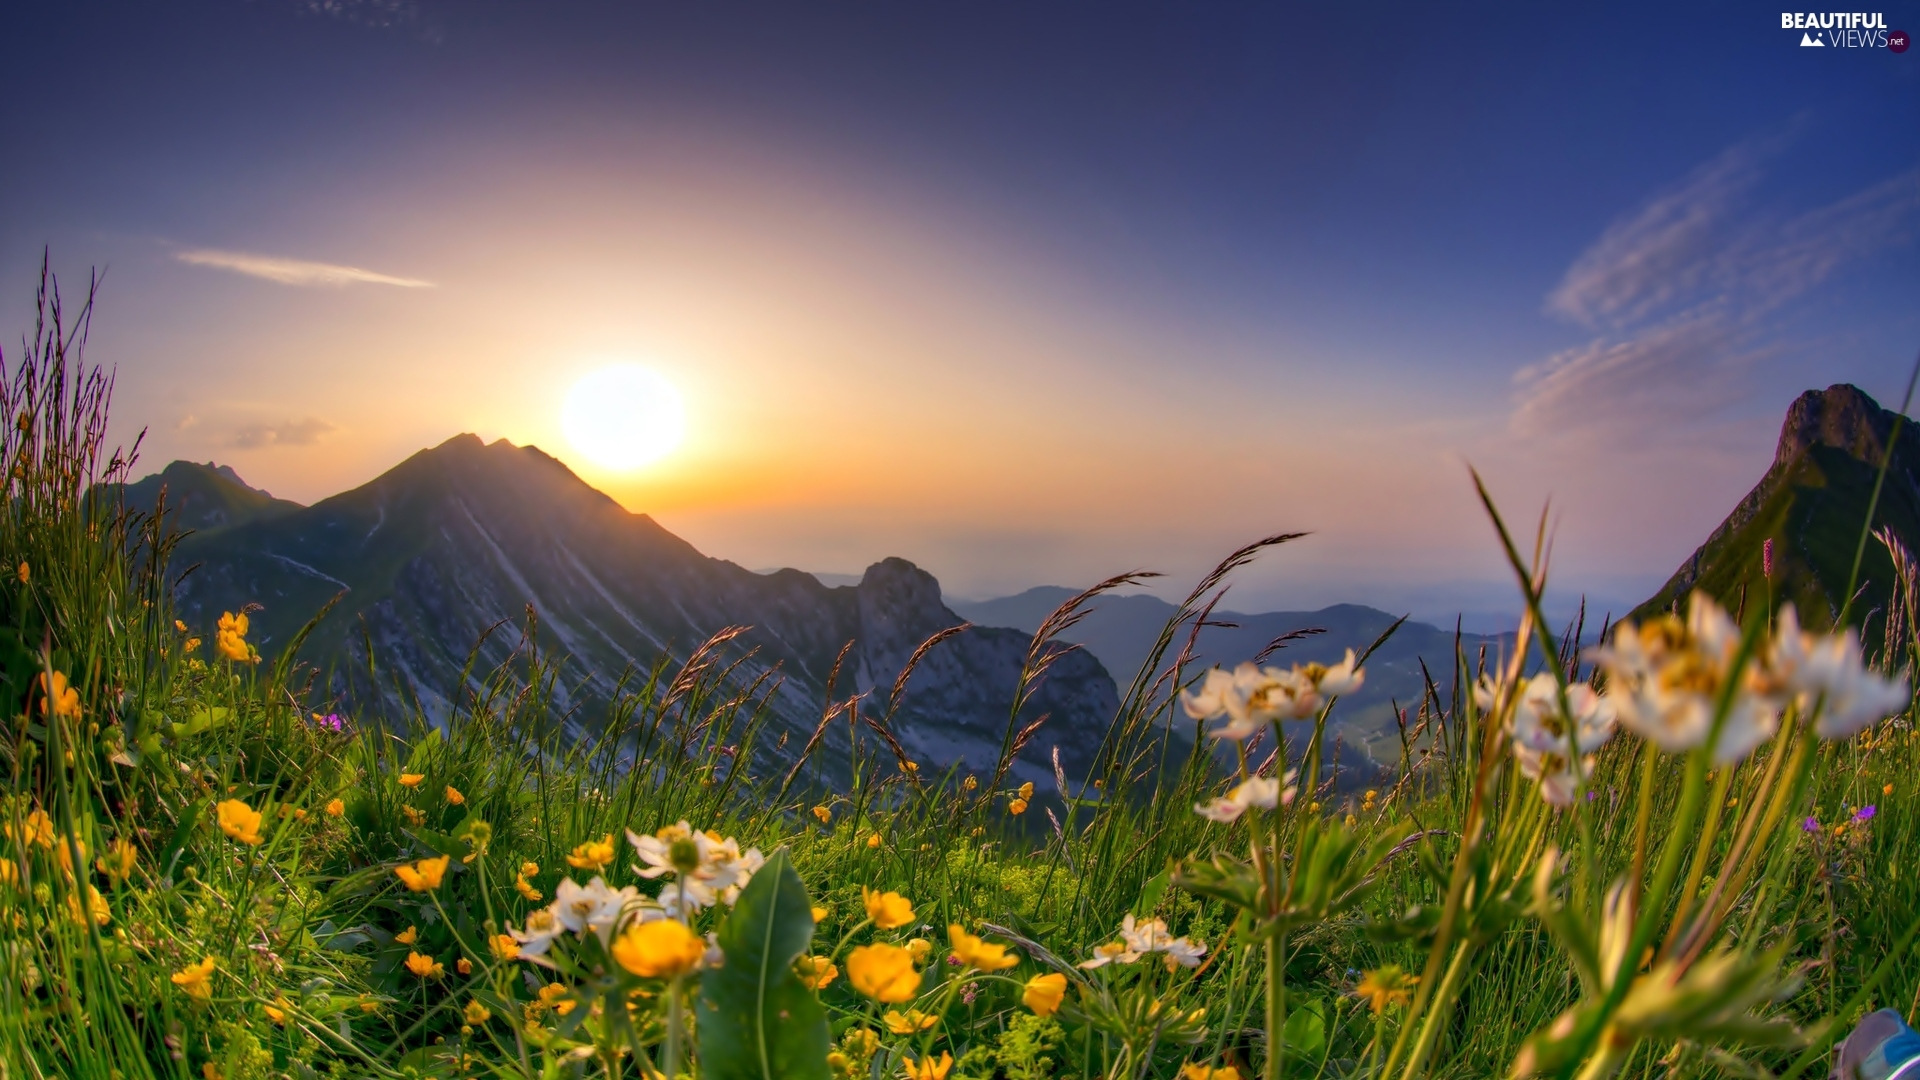 Sunrise, Spring, Meadow, Flowers, Mountains